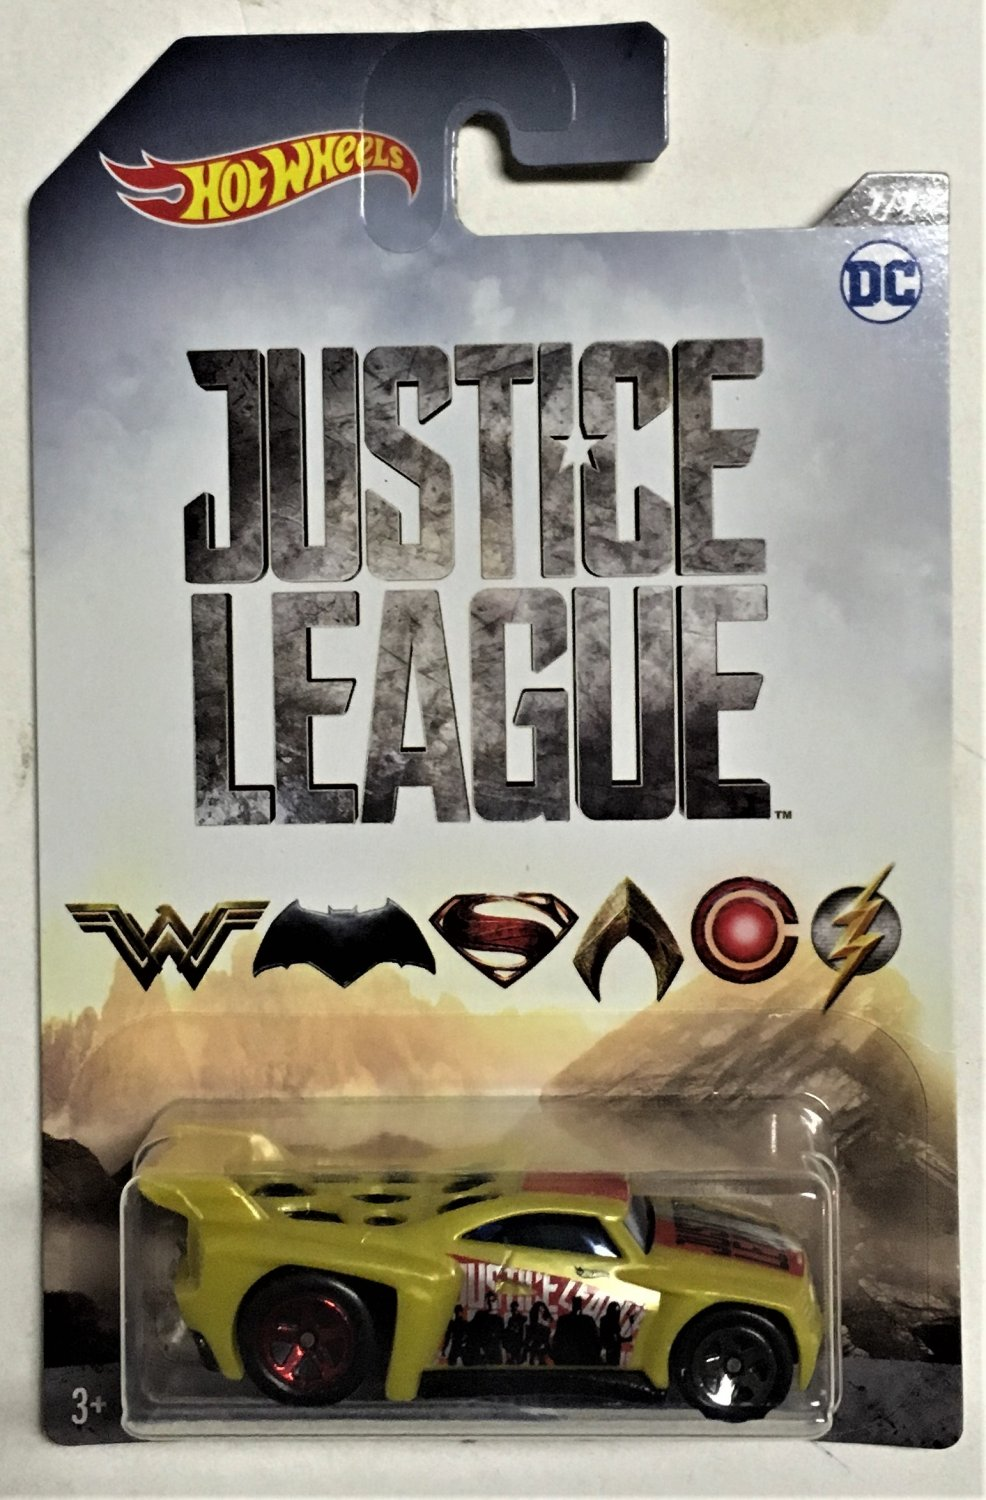 2017 Hot Wheels Justice League #7 Bassline